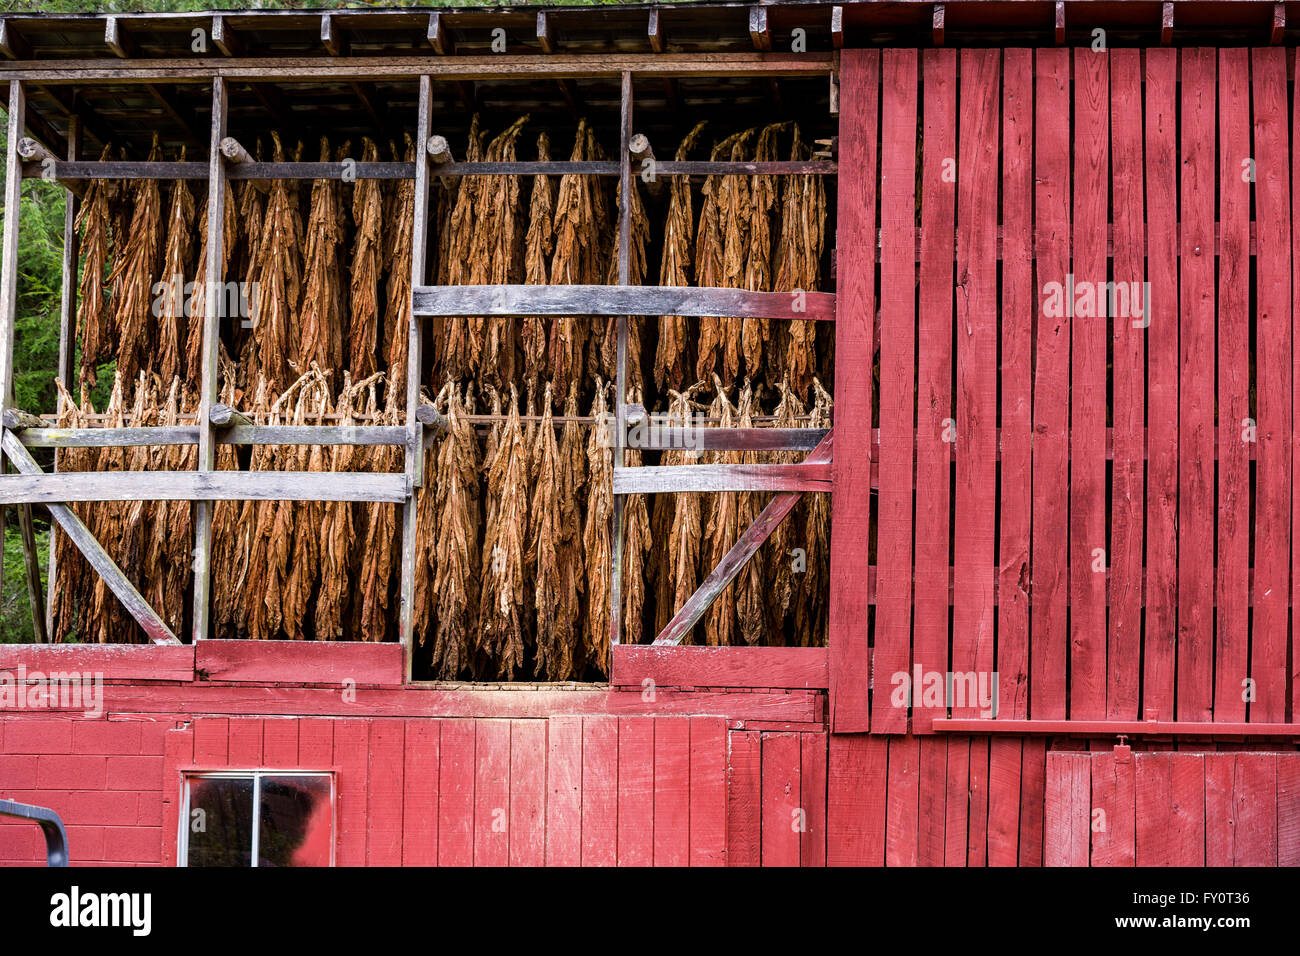 An old tobacco drying barn to air cure burley tobacco in prices an old tobacco drying barn to air cure burley tobacco in prices creek north carolina tobacco growing is no longer economically viable in western north sciox Image collections